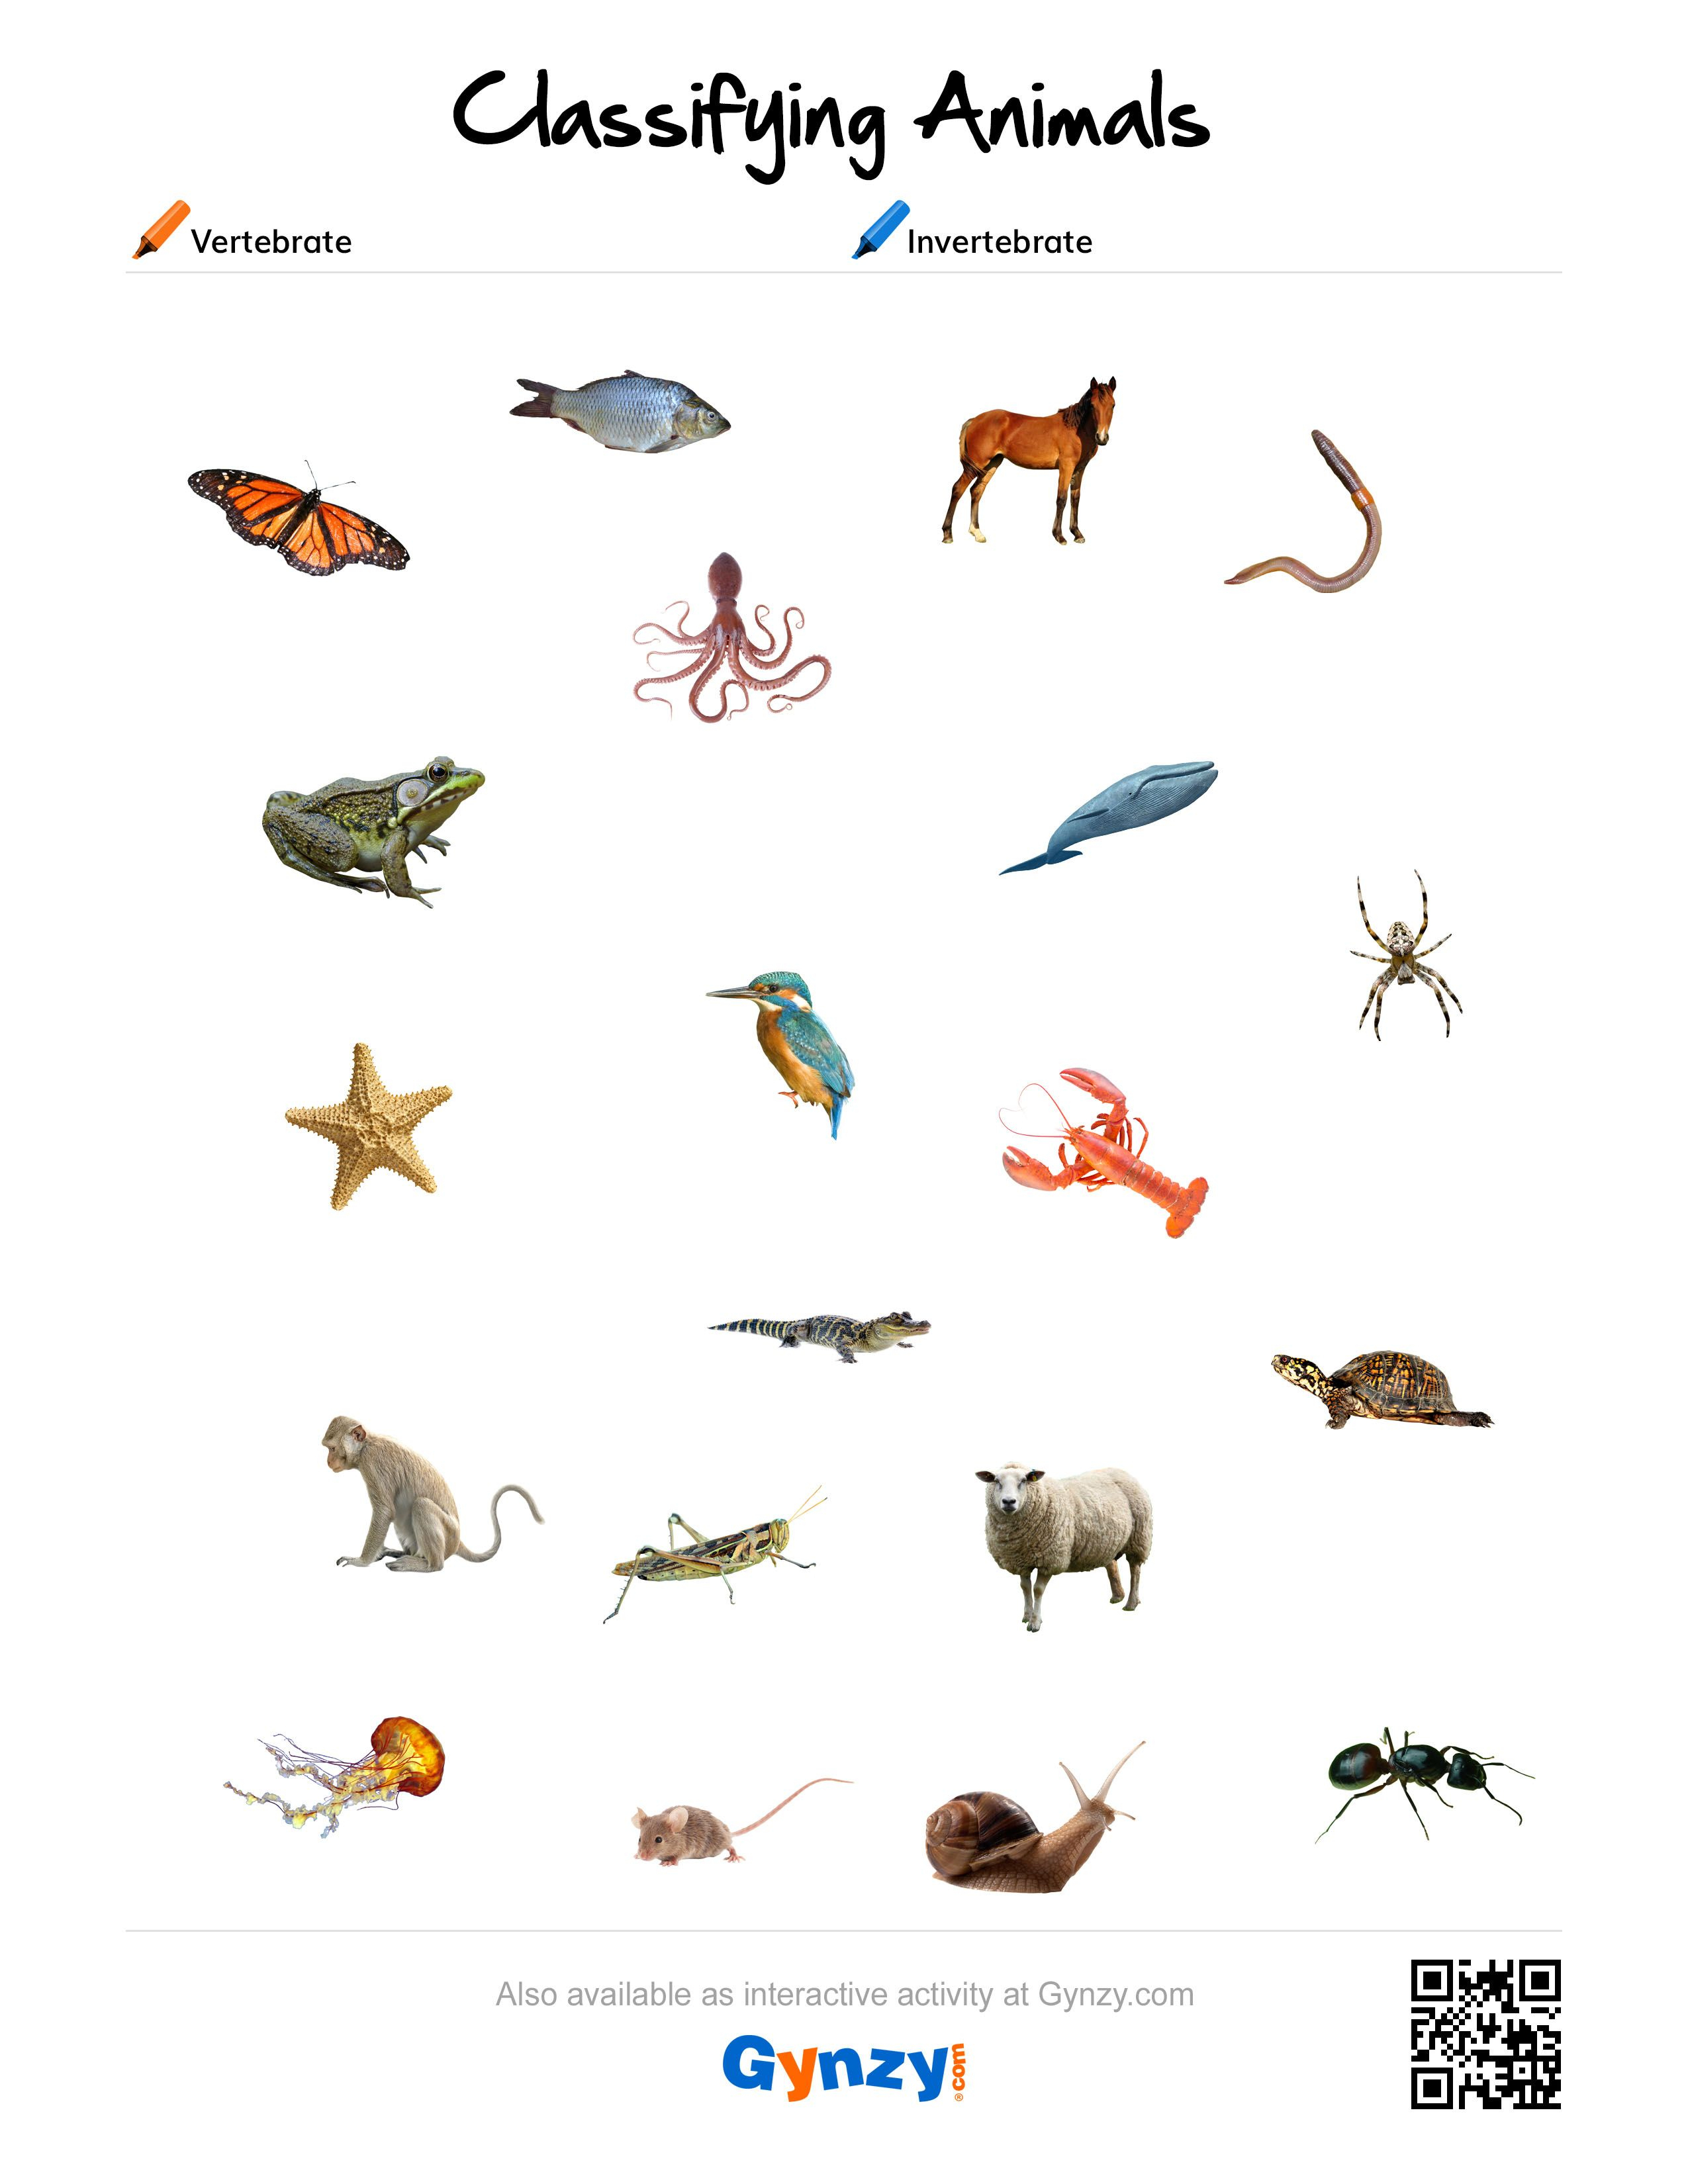 Pinteacher Timo On Classifying Animals | Classes Of Vertebrates | Free Printable Worksheets On Vertebrates And Invertebrates